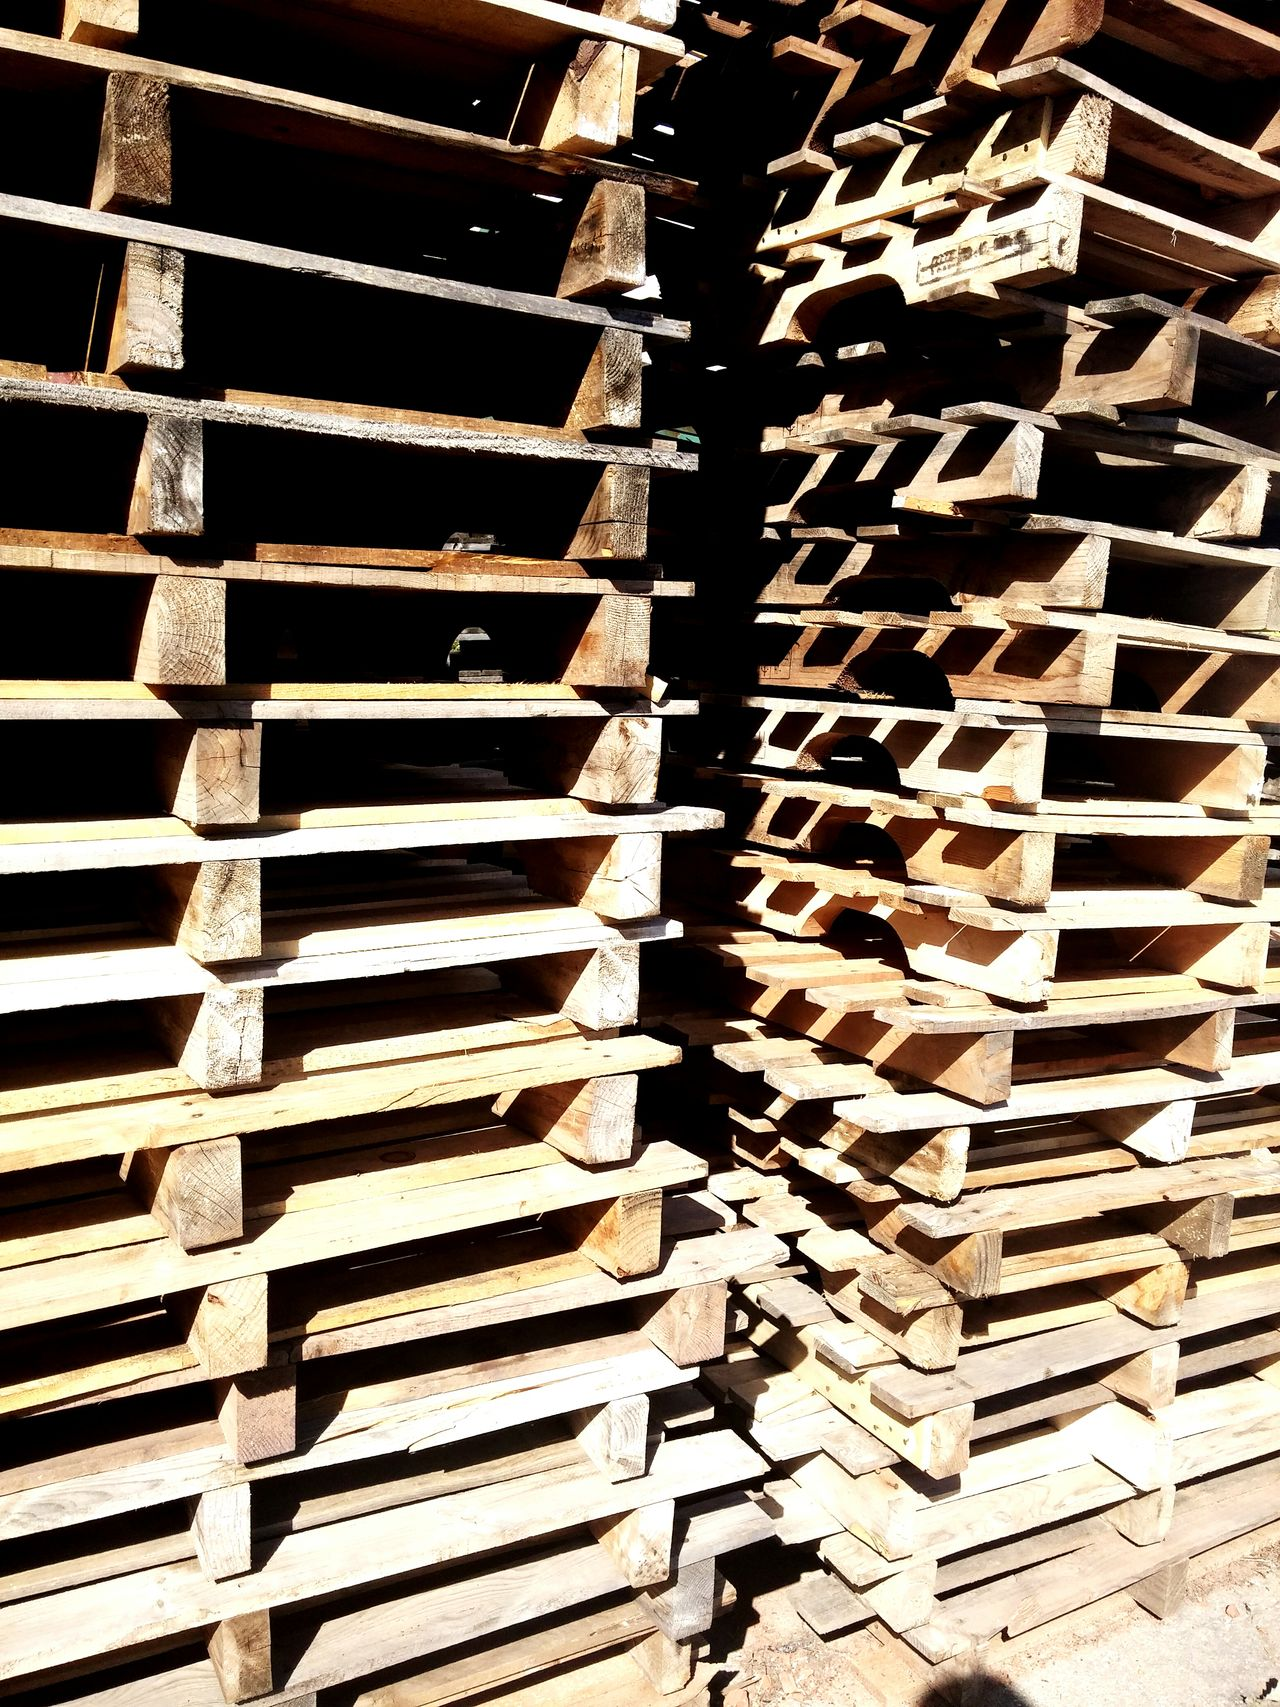 Stack of wooden pallets. Pallets Wooden Pallets Stack Of Pallets Suny Day Industrial Industry Wearhouse Logistics